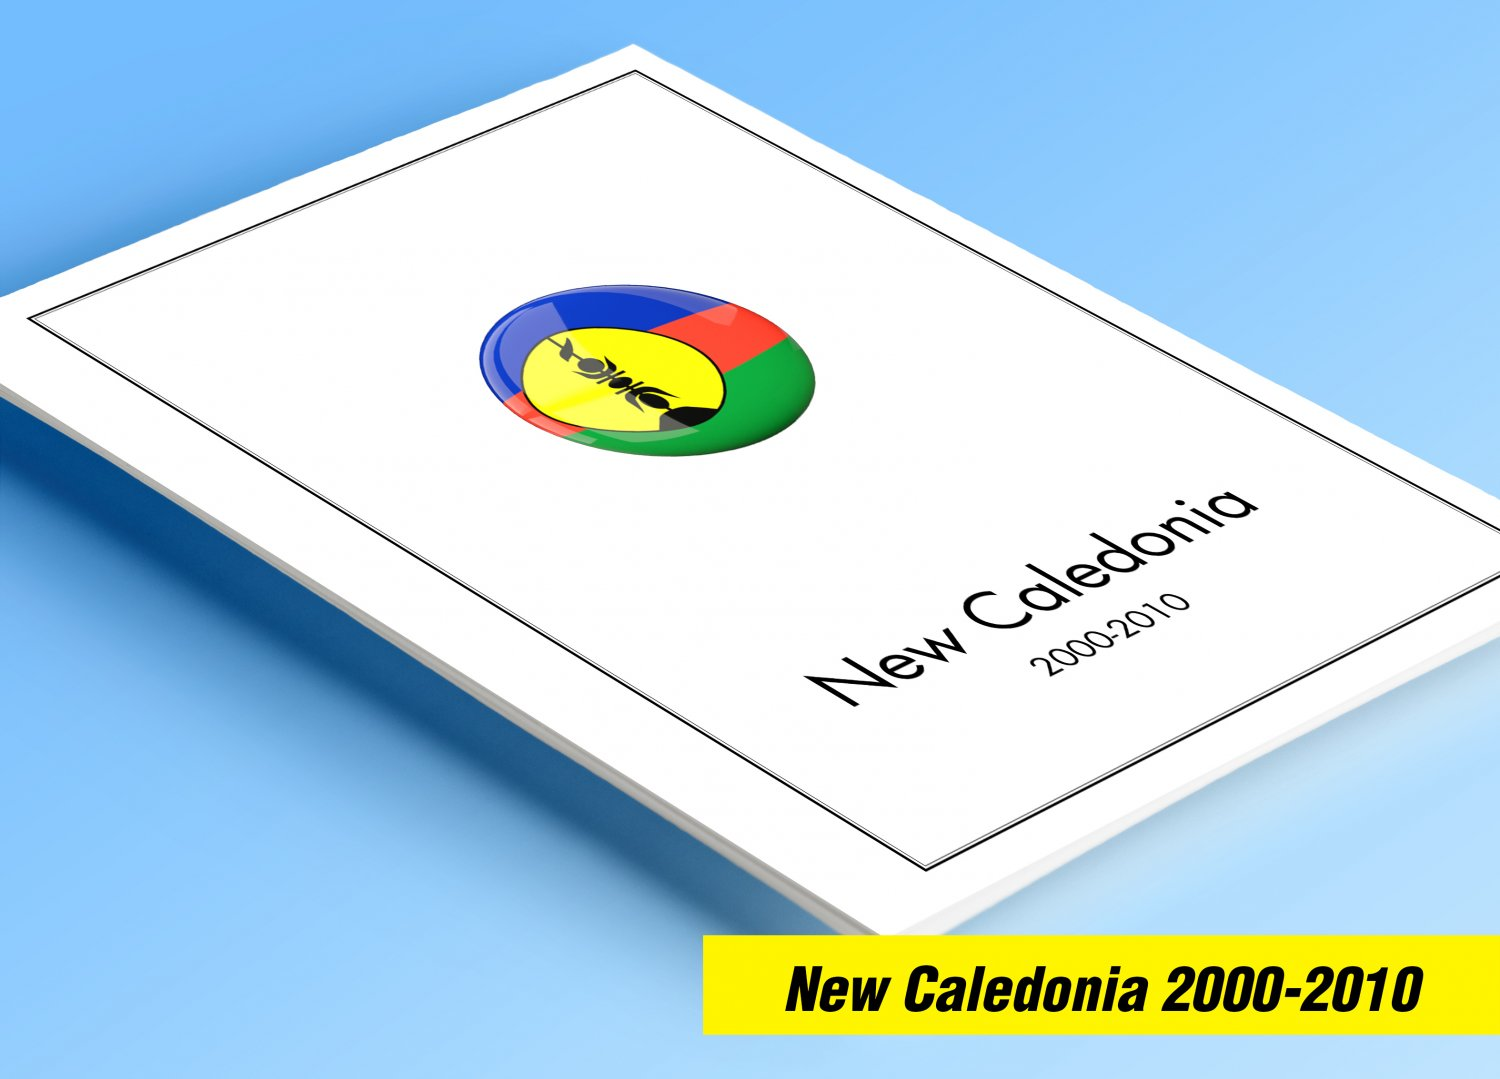 COLOR PRINTED NEW CALEDONIA 2000-2010 STAMP ALBUM  PAGES (51 illustrated pages)